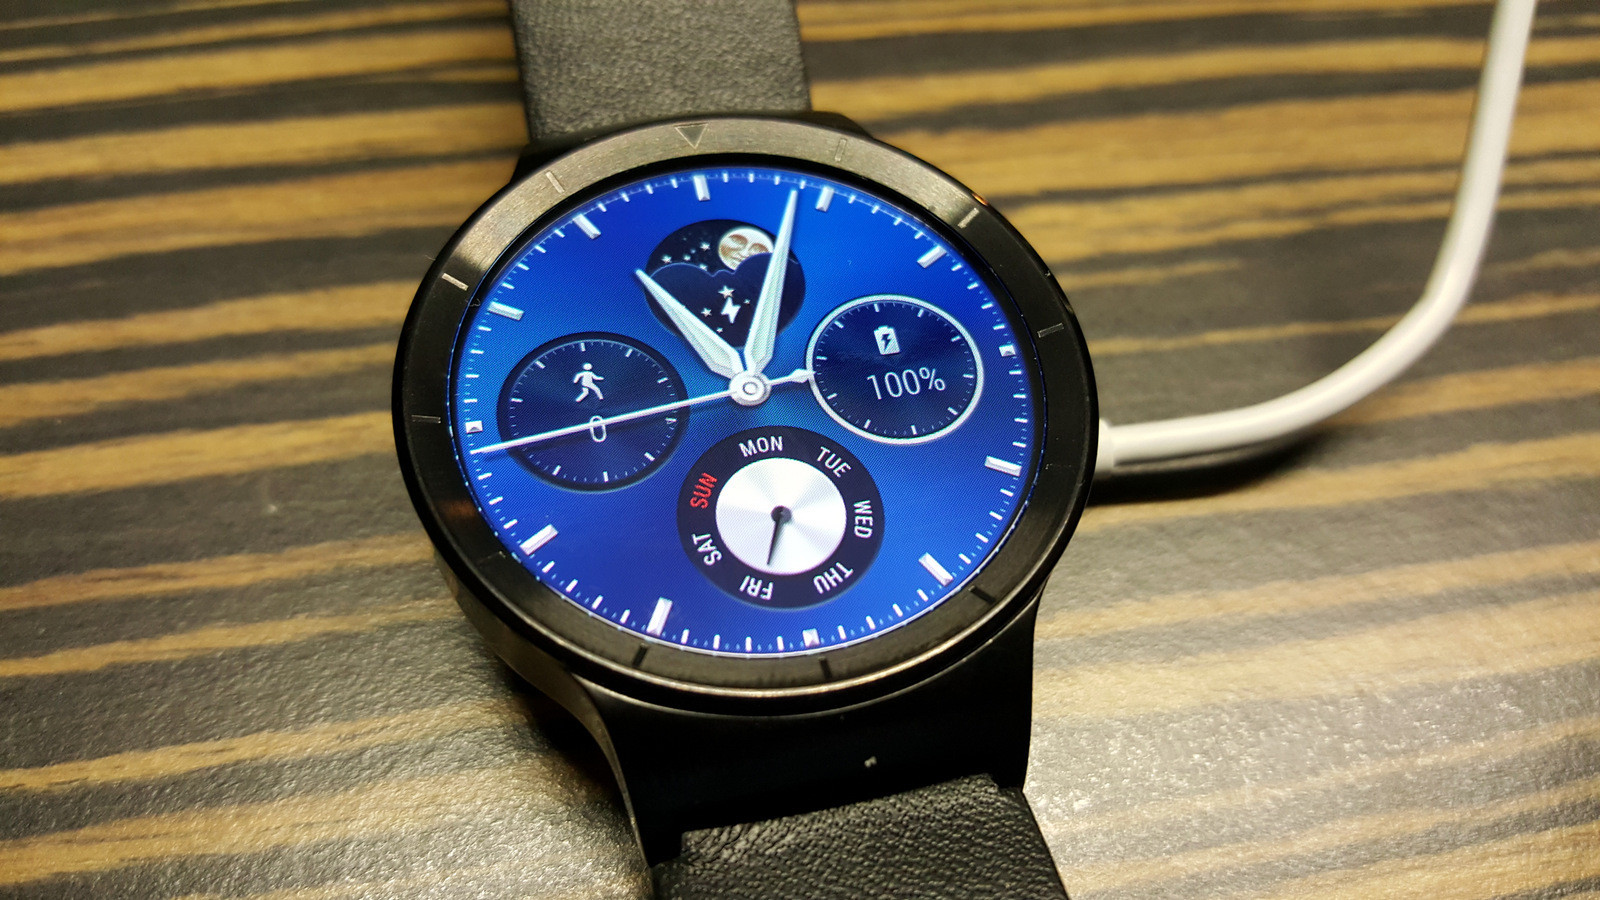 IFA 2015: Smartwatch Huawei Watch im Hands-On